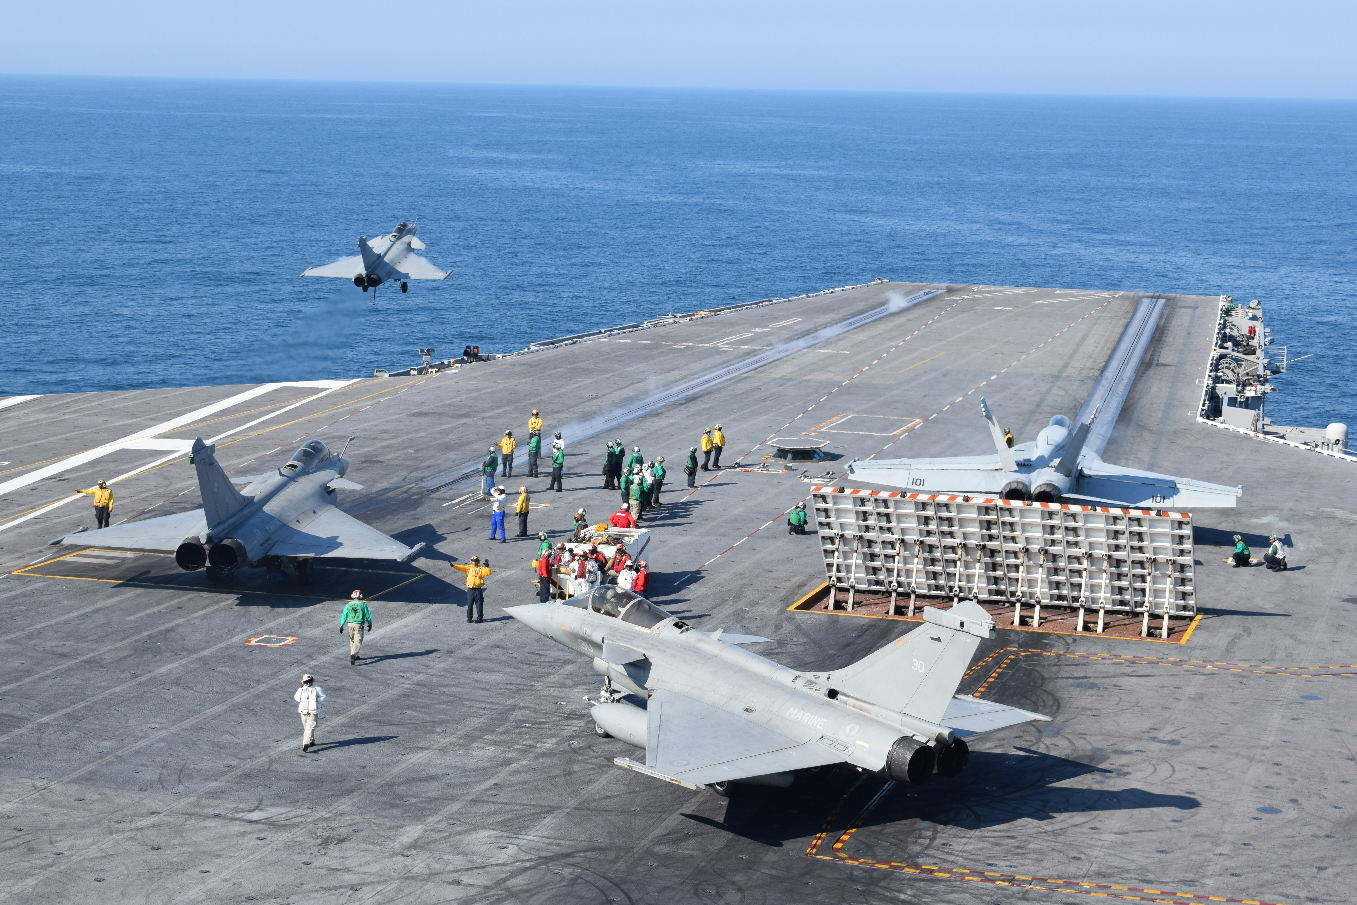 French Navy pilots train on U.S. carrier